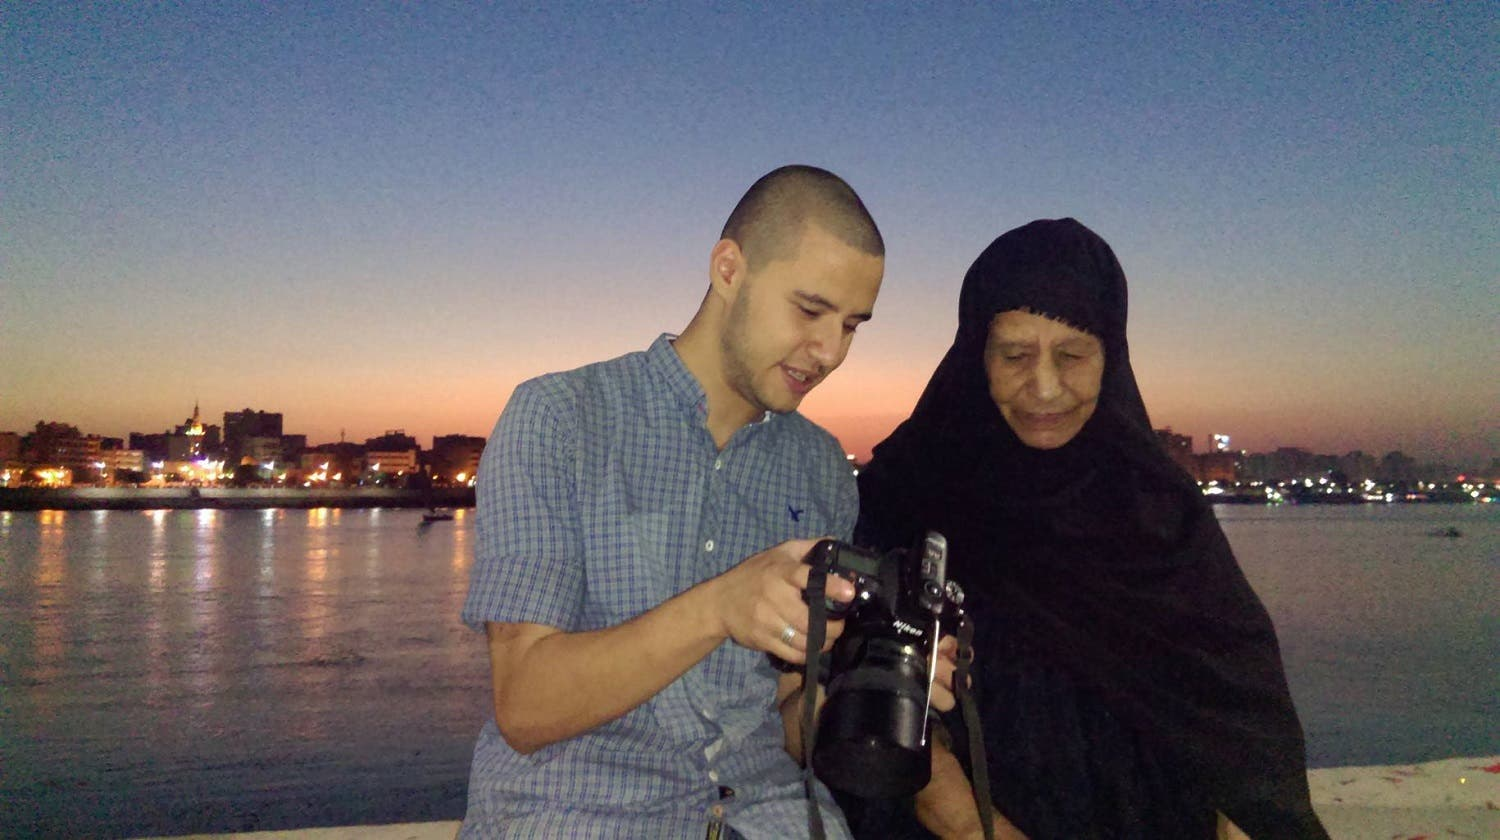 Abdullah Mohammad, the photographer, showing the digital images from the photoshoot to the grandmother.